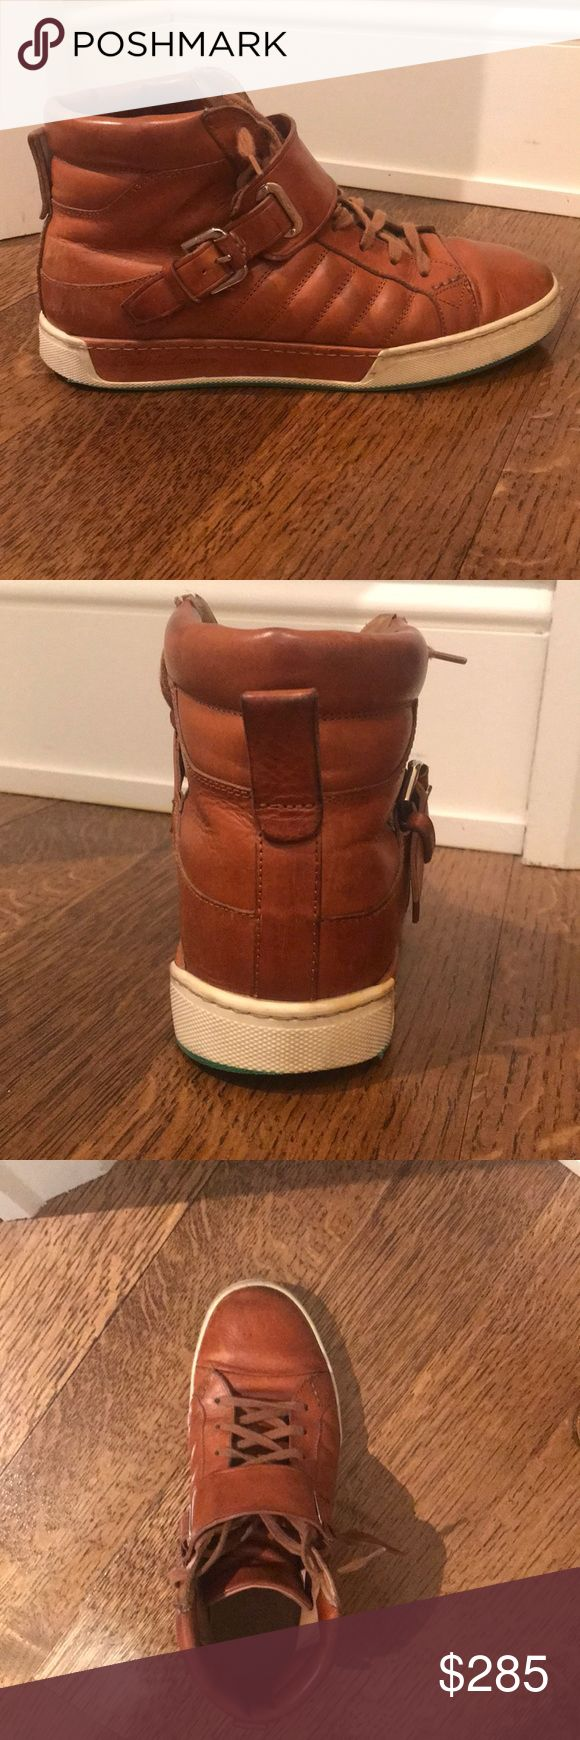 Ralph Lauren purple label leather high tops. $980 Purchased at Bal Harbour mall. Fits true to size. Has some signs of wear and tear. Cannot be found anywhere else. Make offers. Looks good with any pair of skinny jeans Ralph Lauren Purple Label Shoes Sneakers